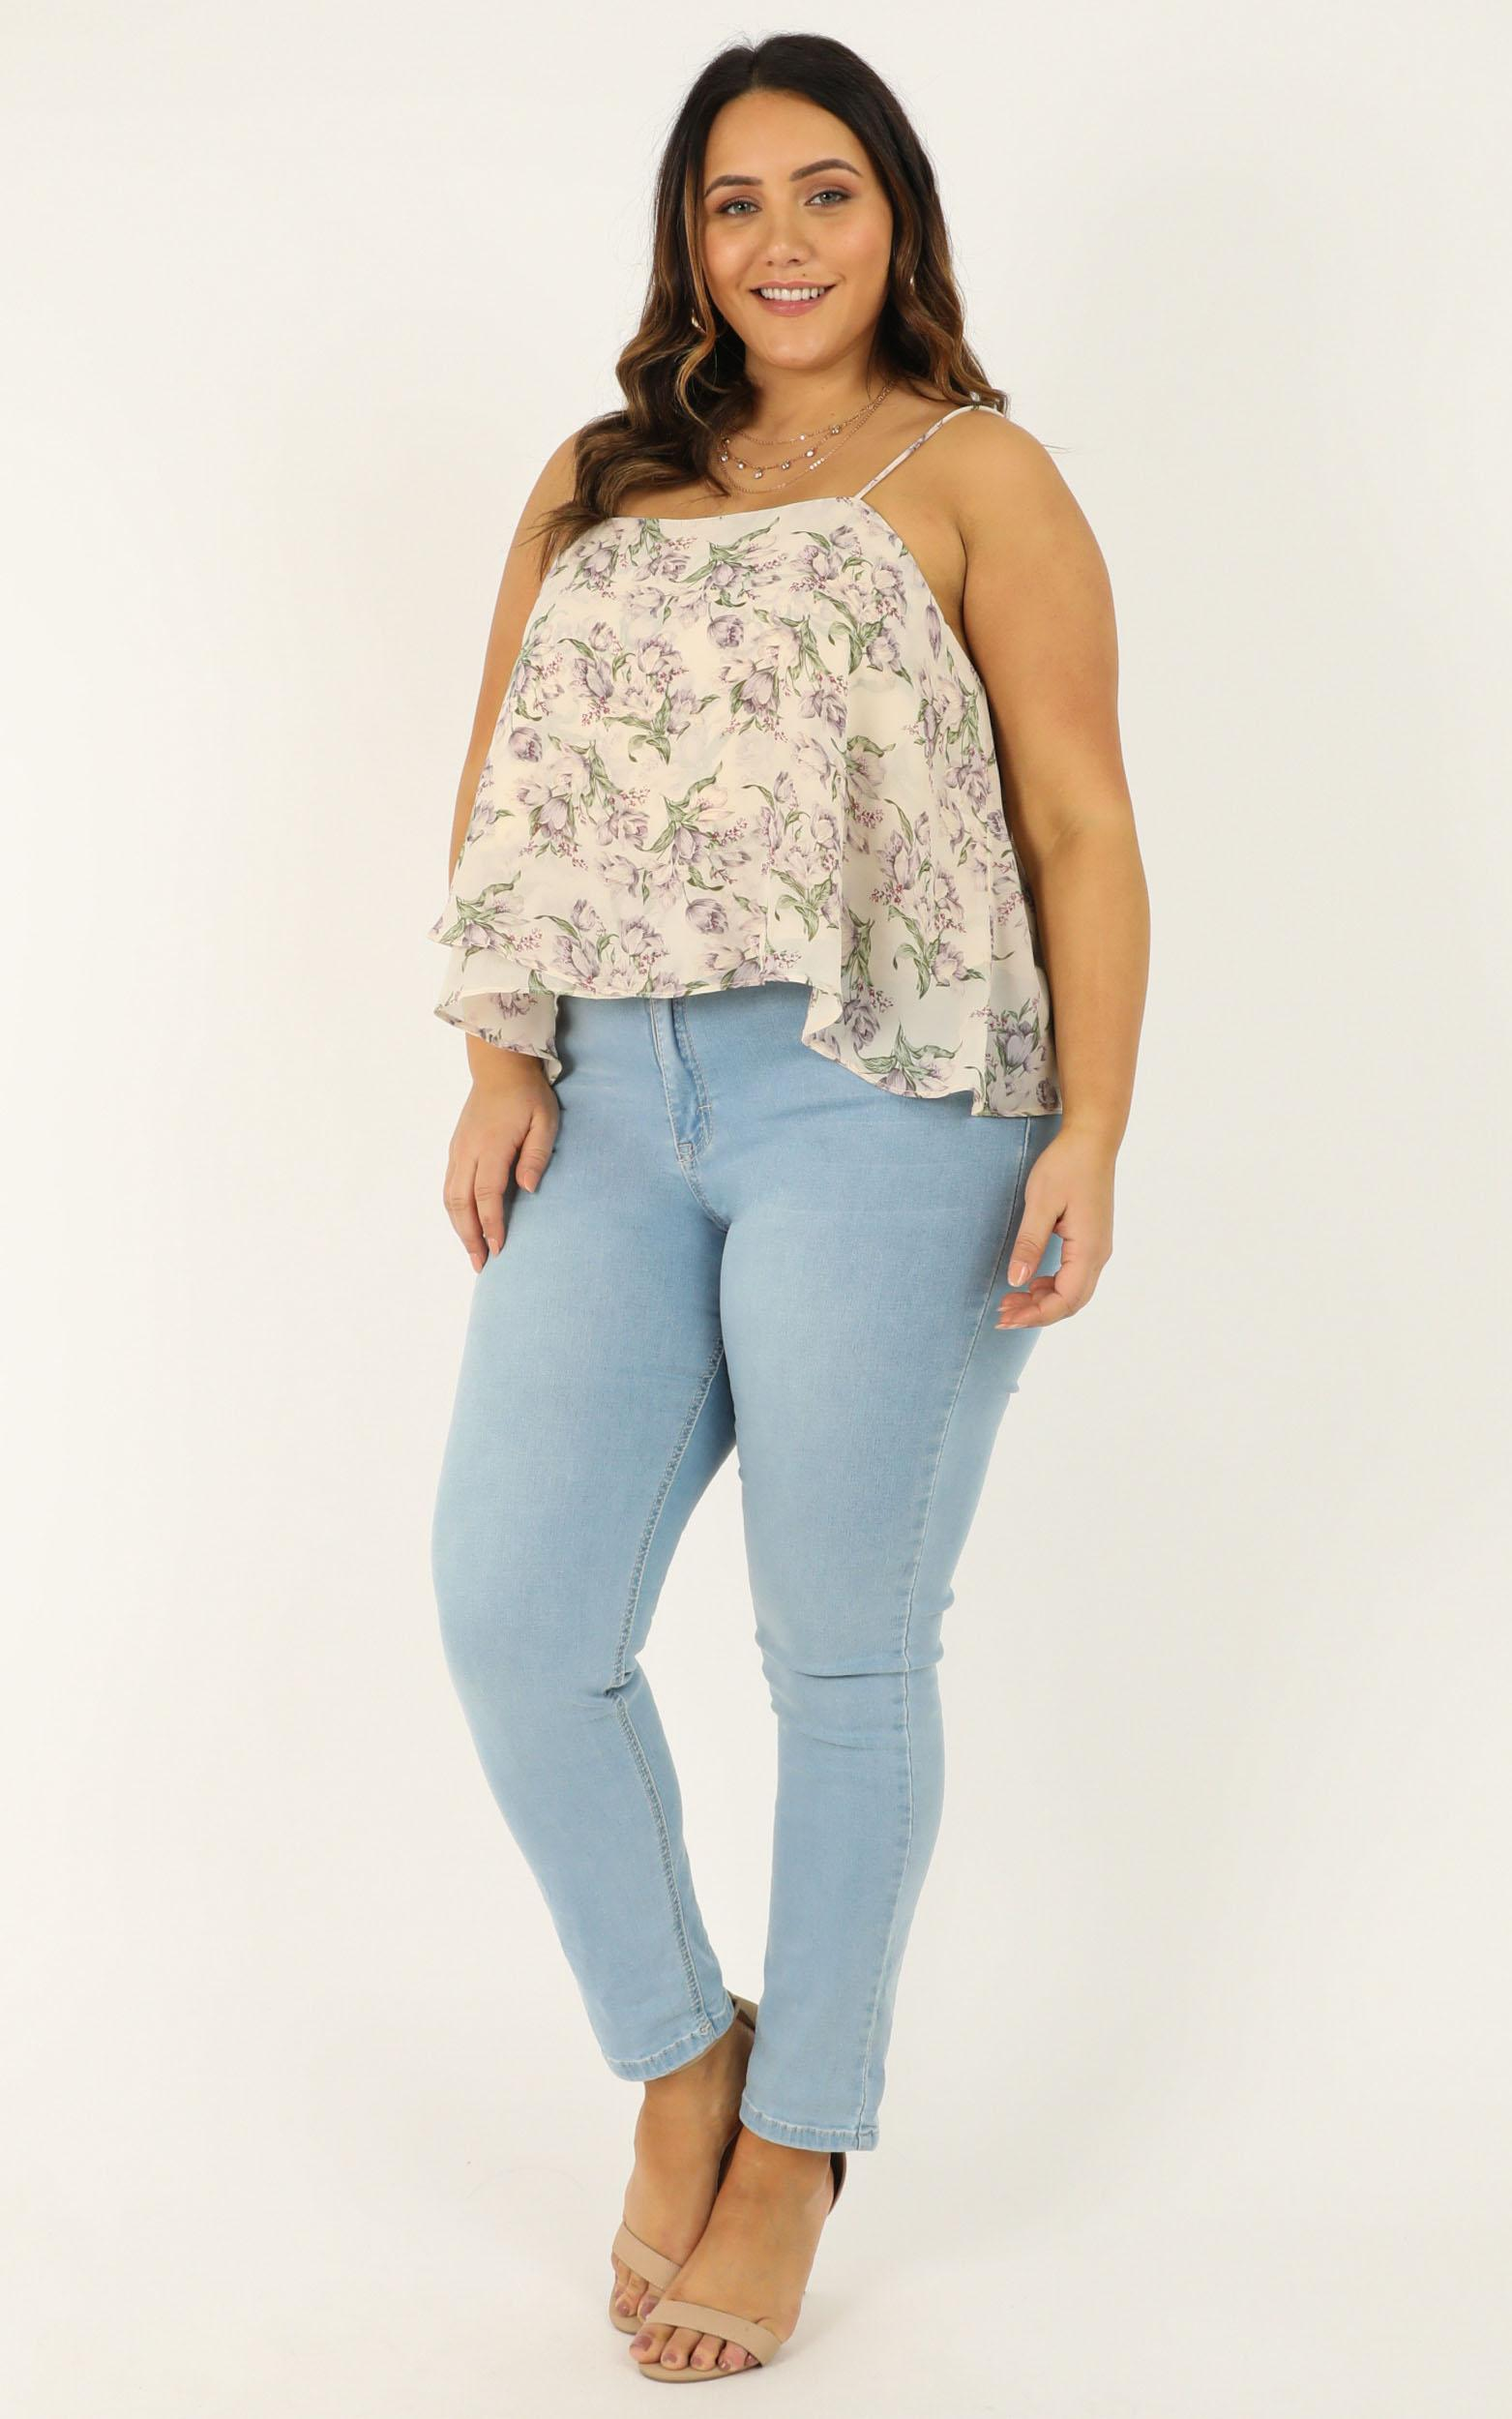 Wanna Be Found Top In cream floral - 12 (L), Cream, hi-res image number null